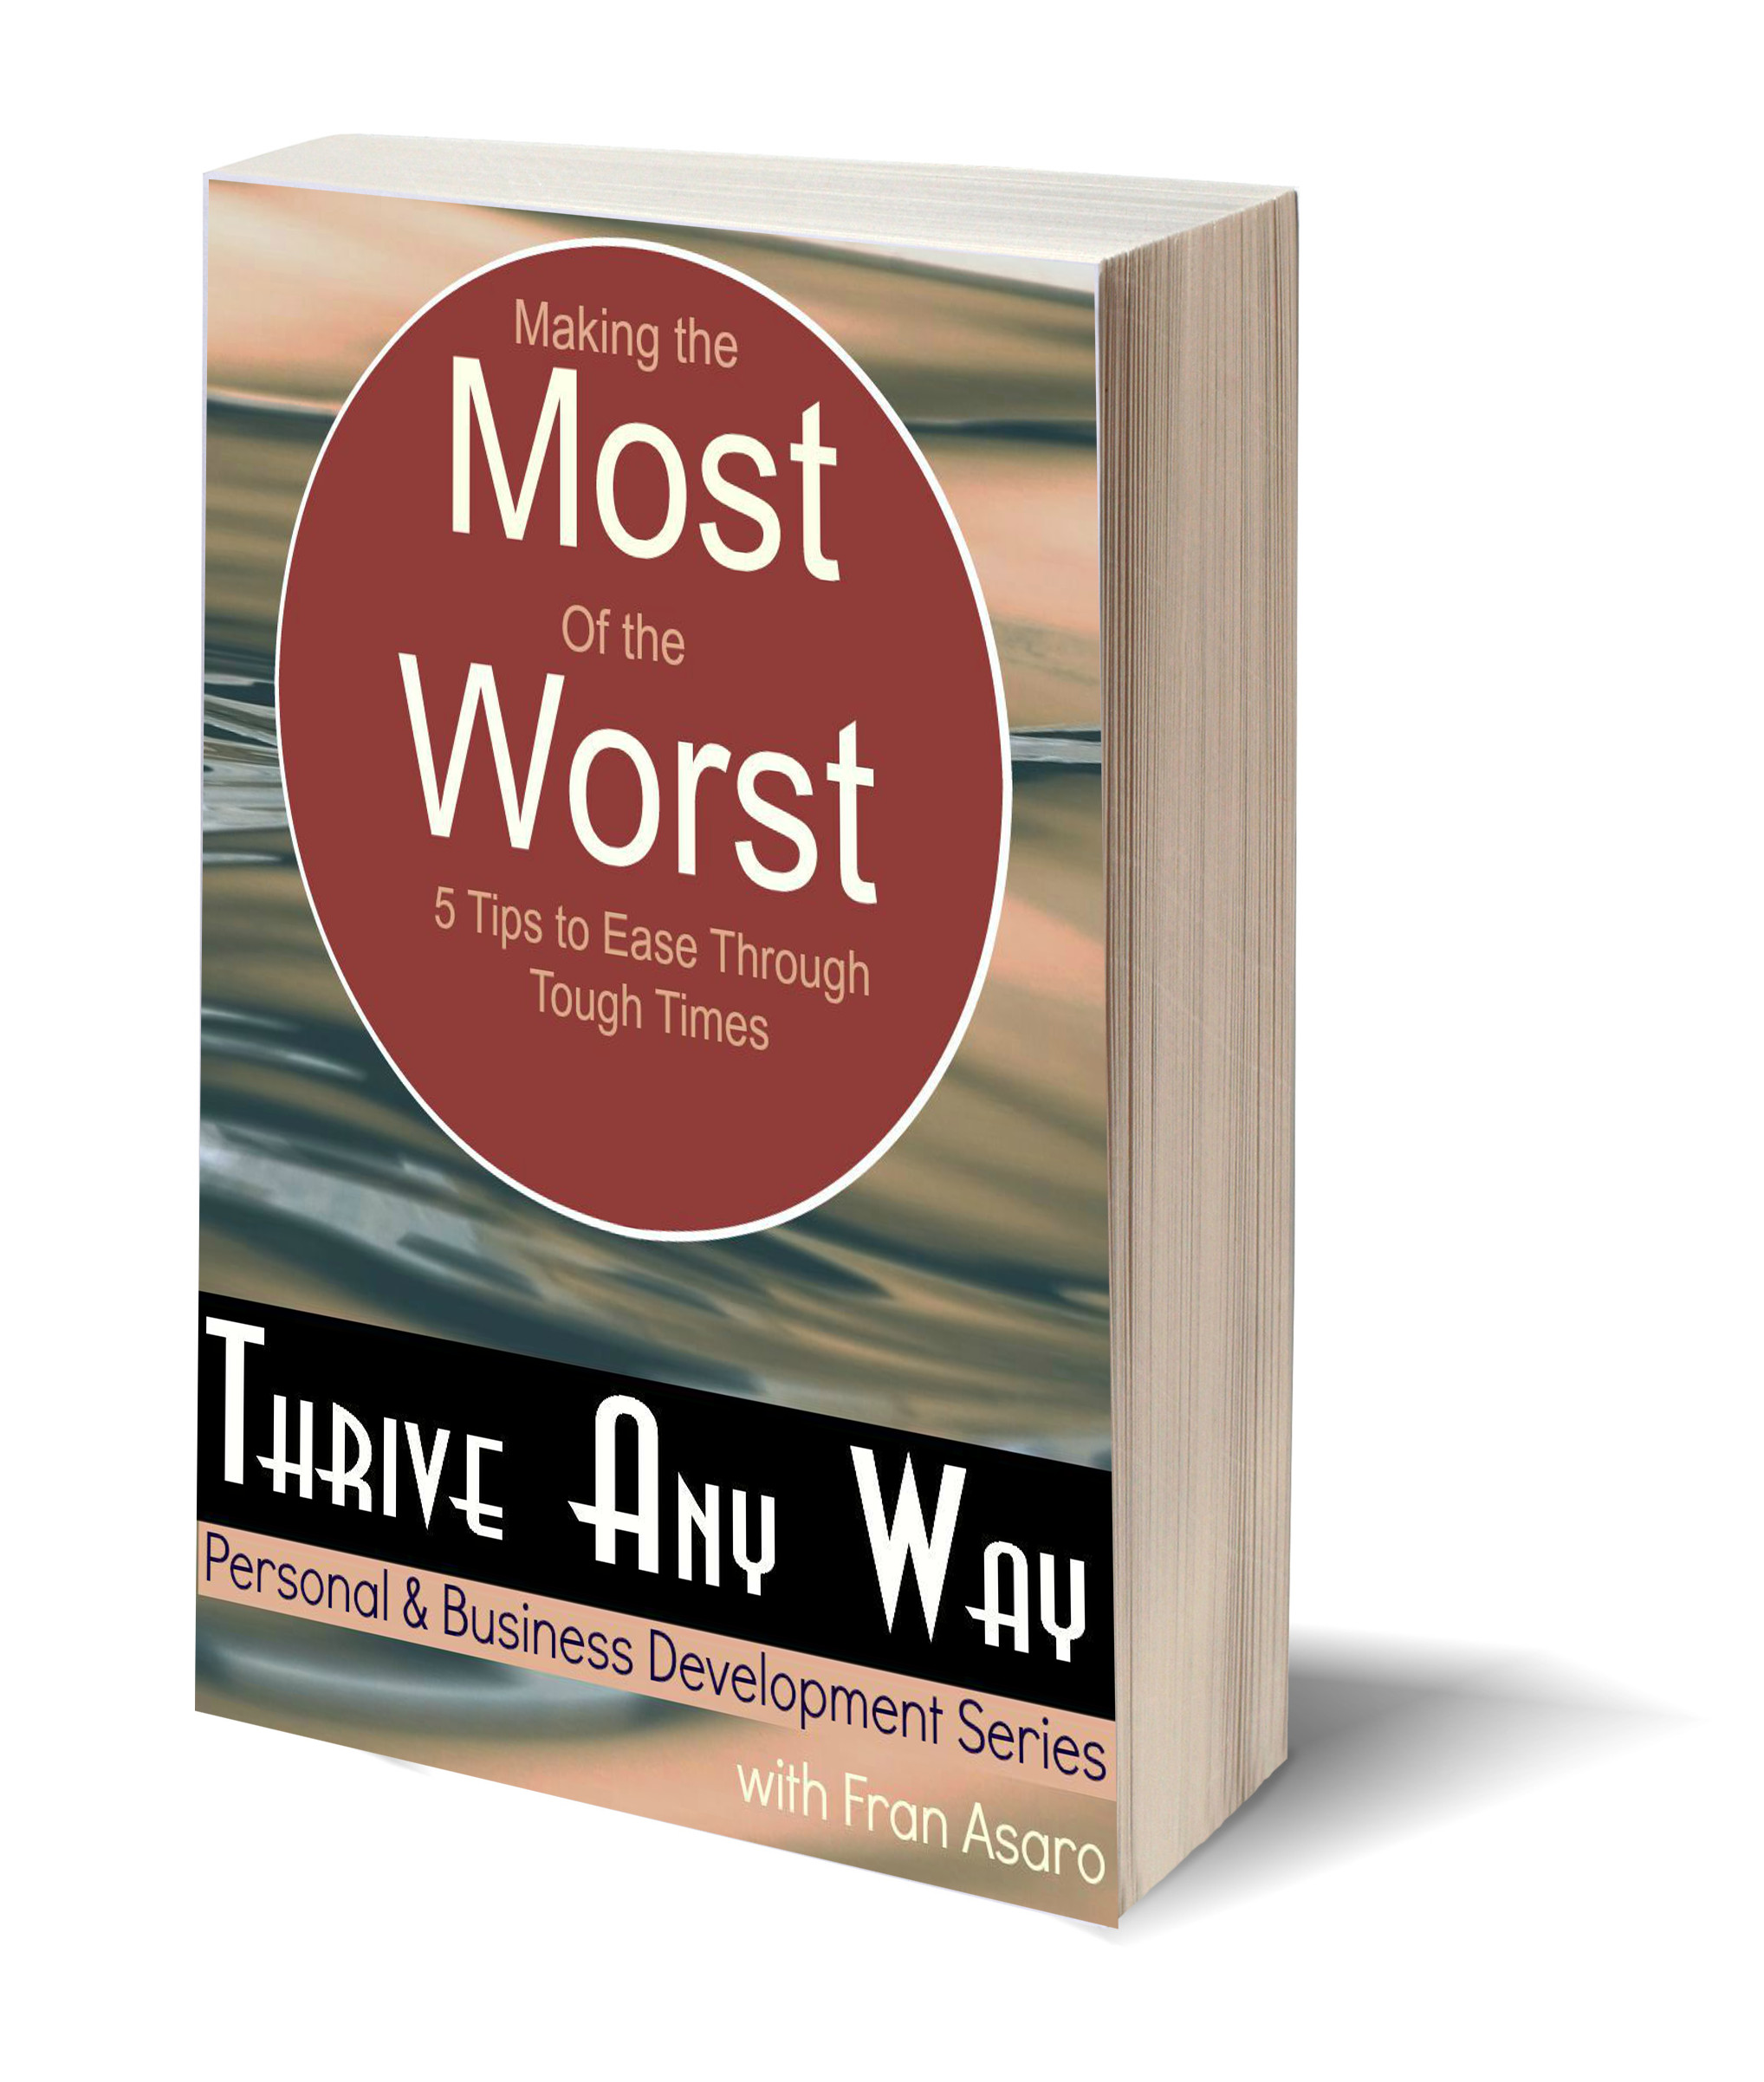 Making the Most of the Worst Ebook by Fran Asaro Thrive Any Way